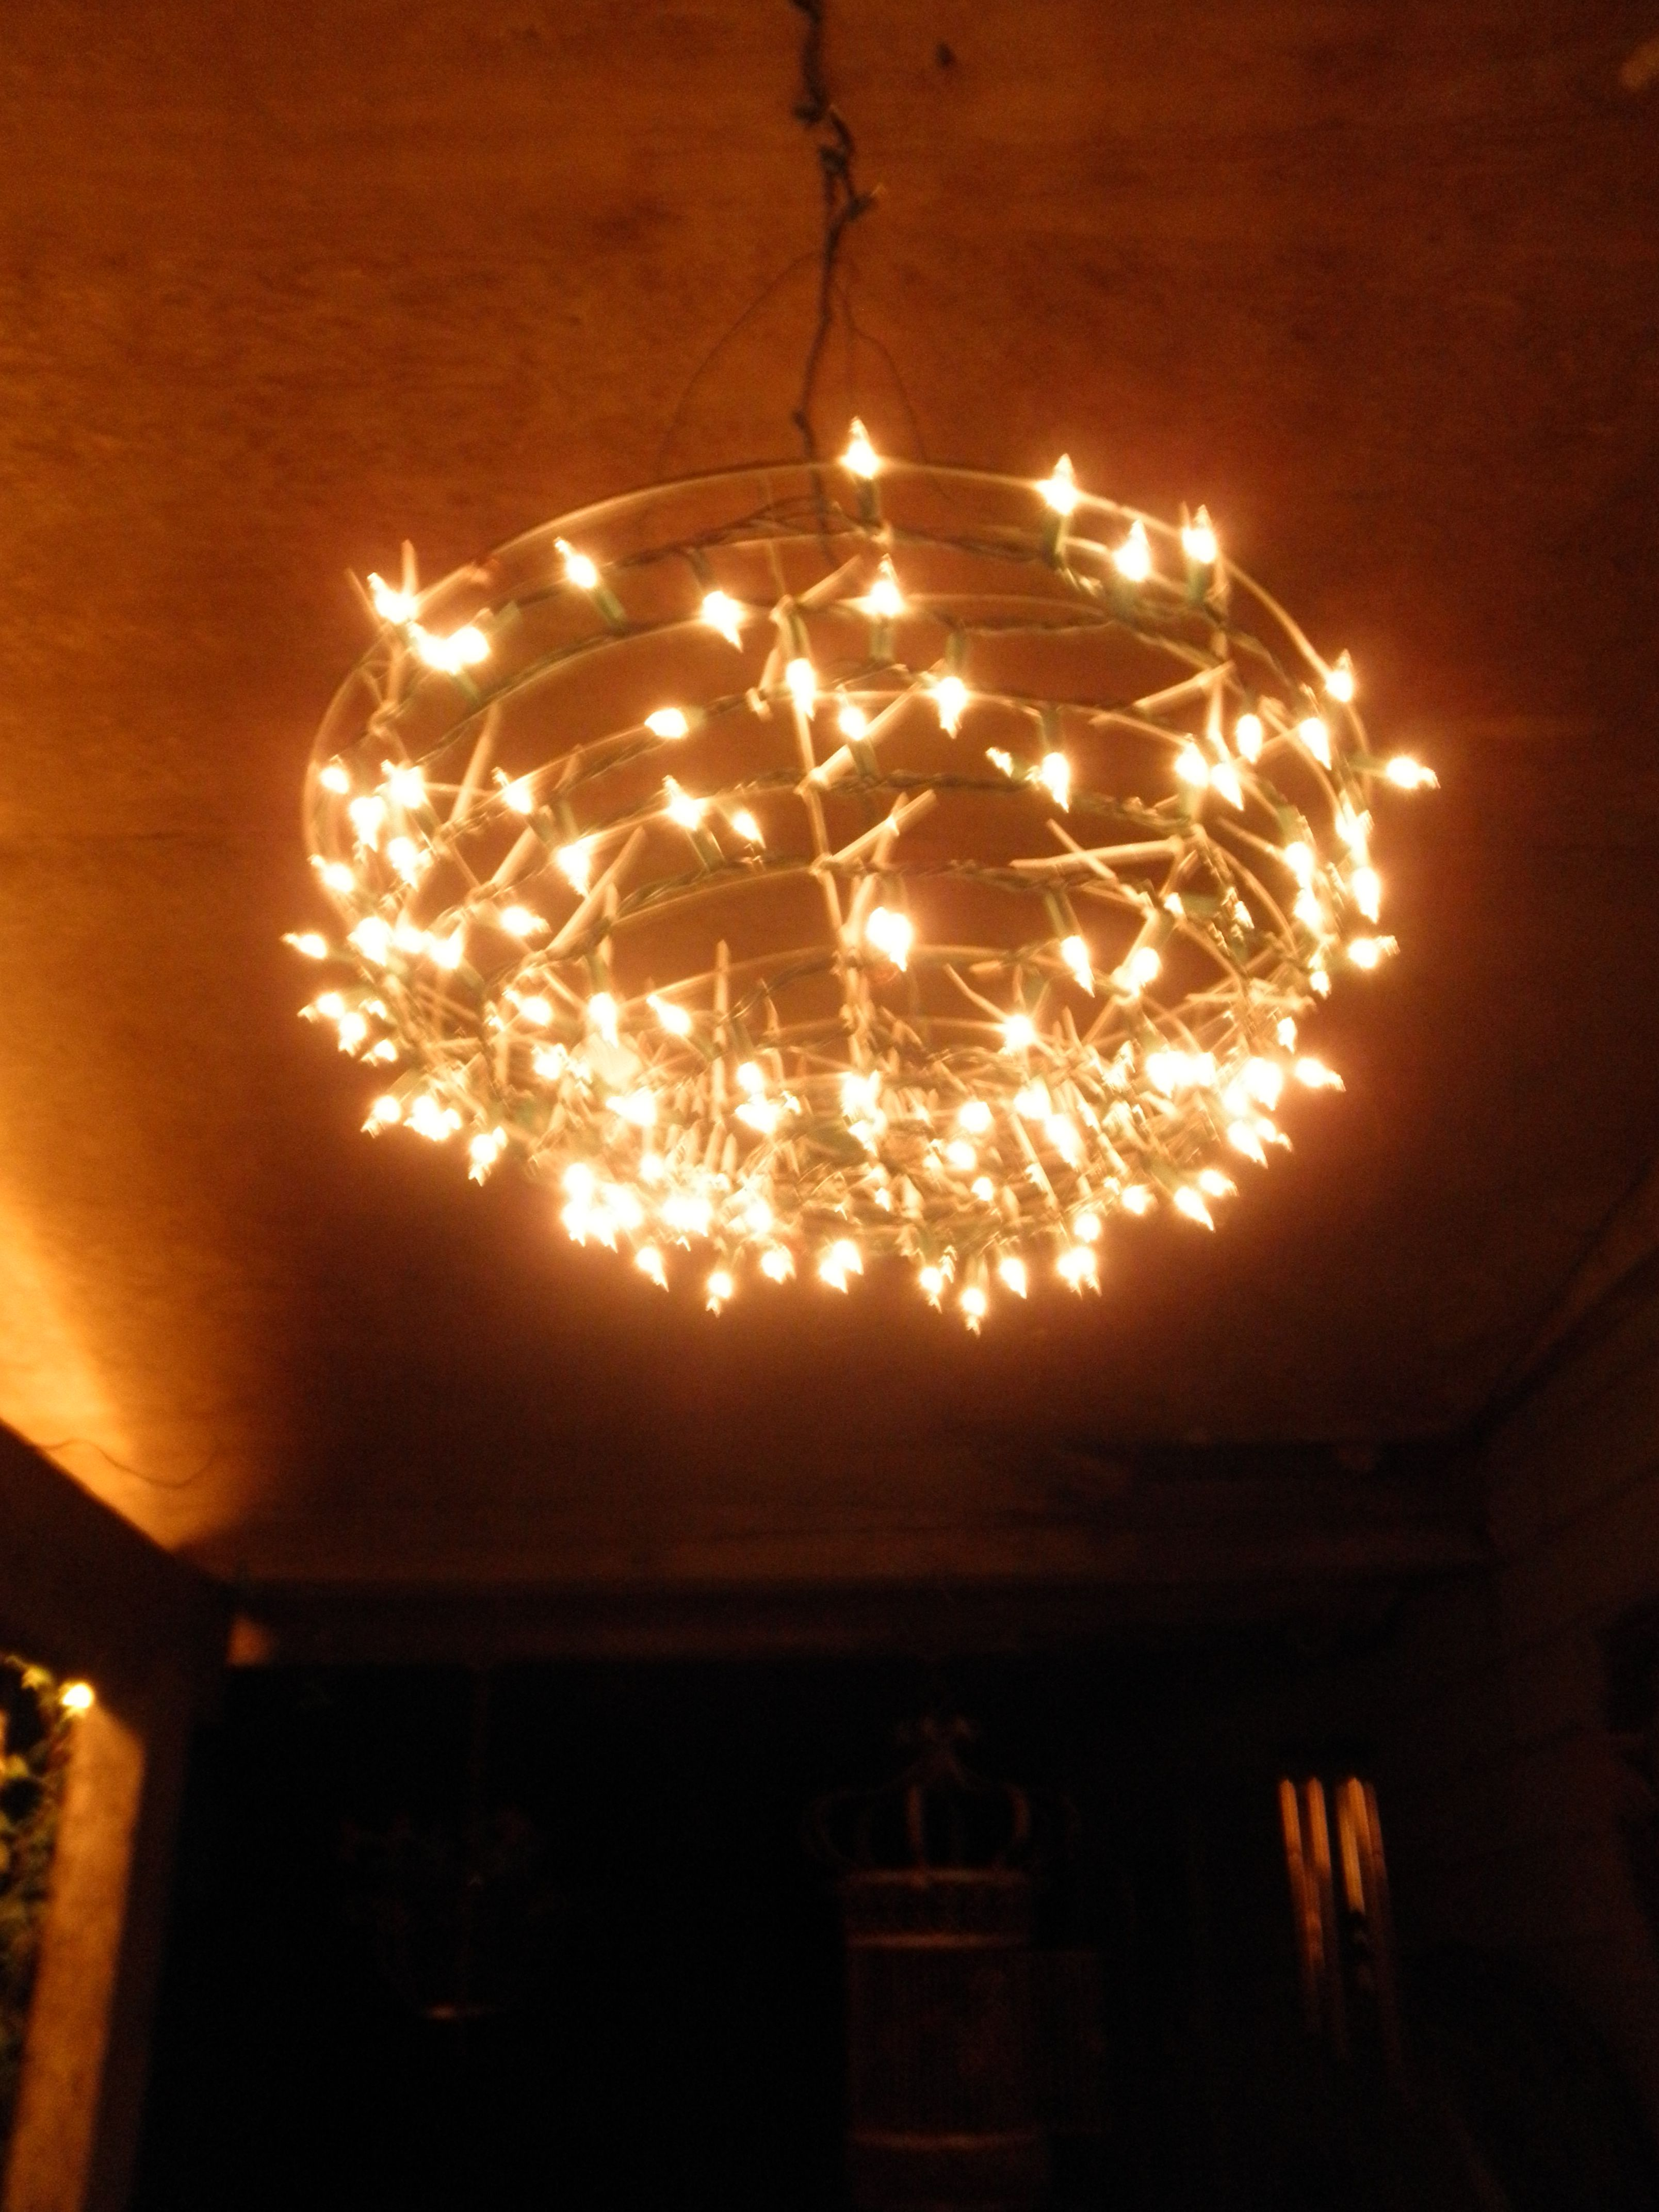 within lighting house chandelier stylish lights for decor hanging outdoor hayneedle porch your